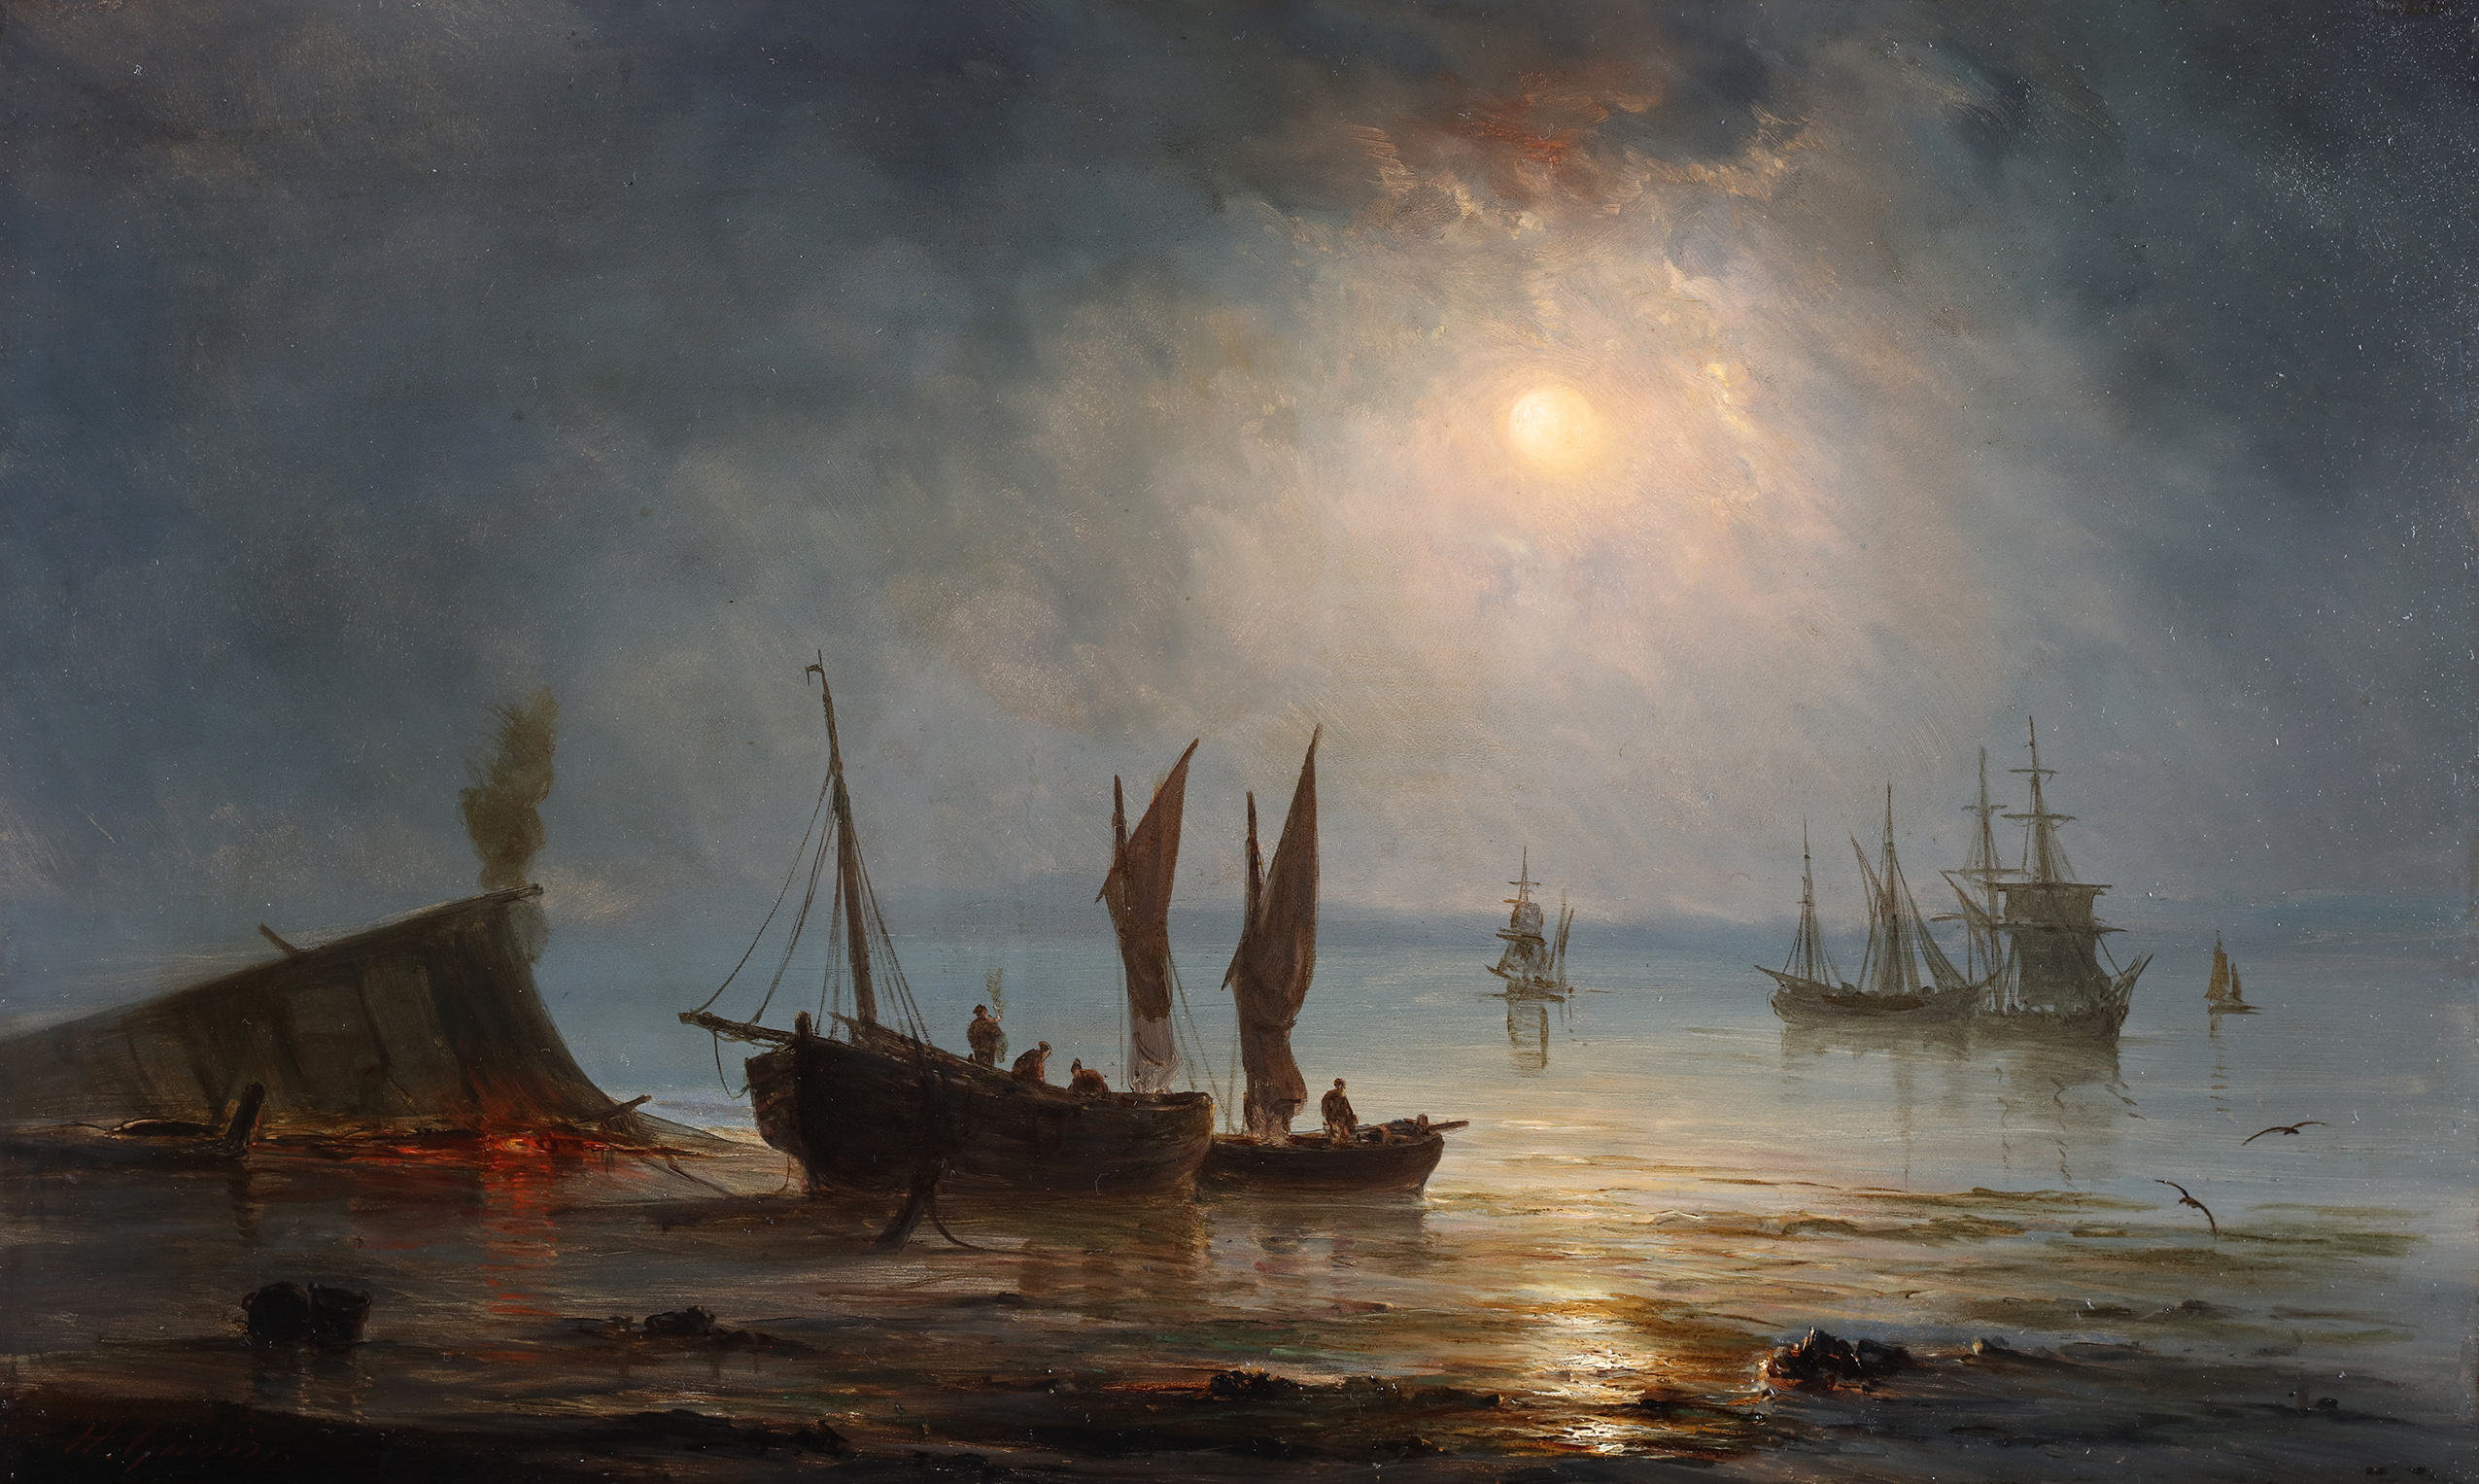 Ships near the coast during the evening